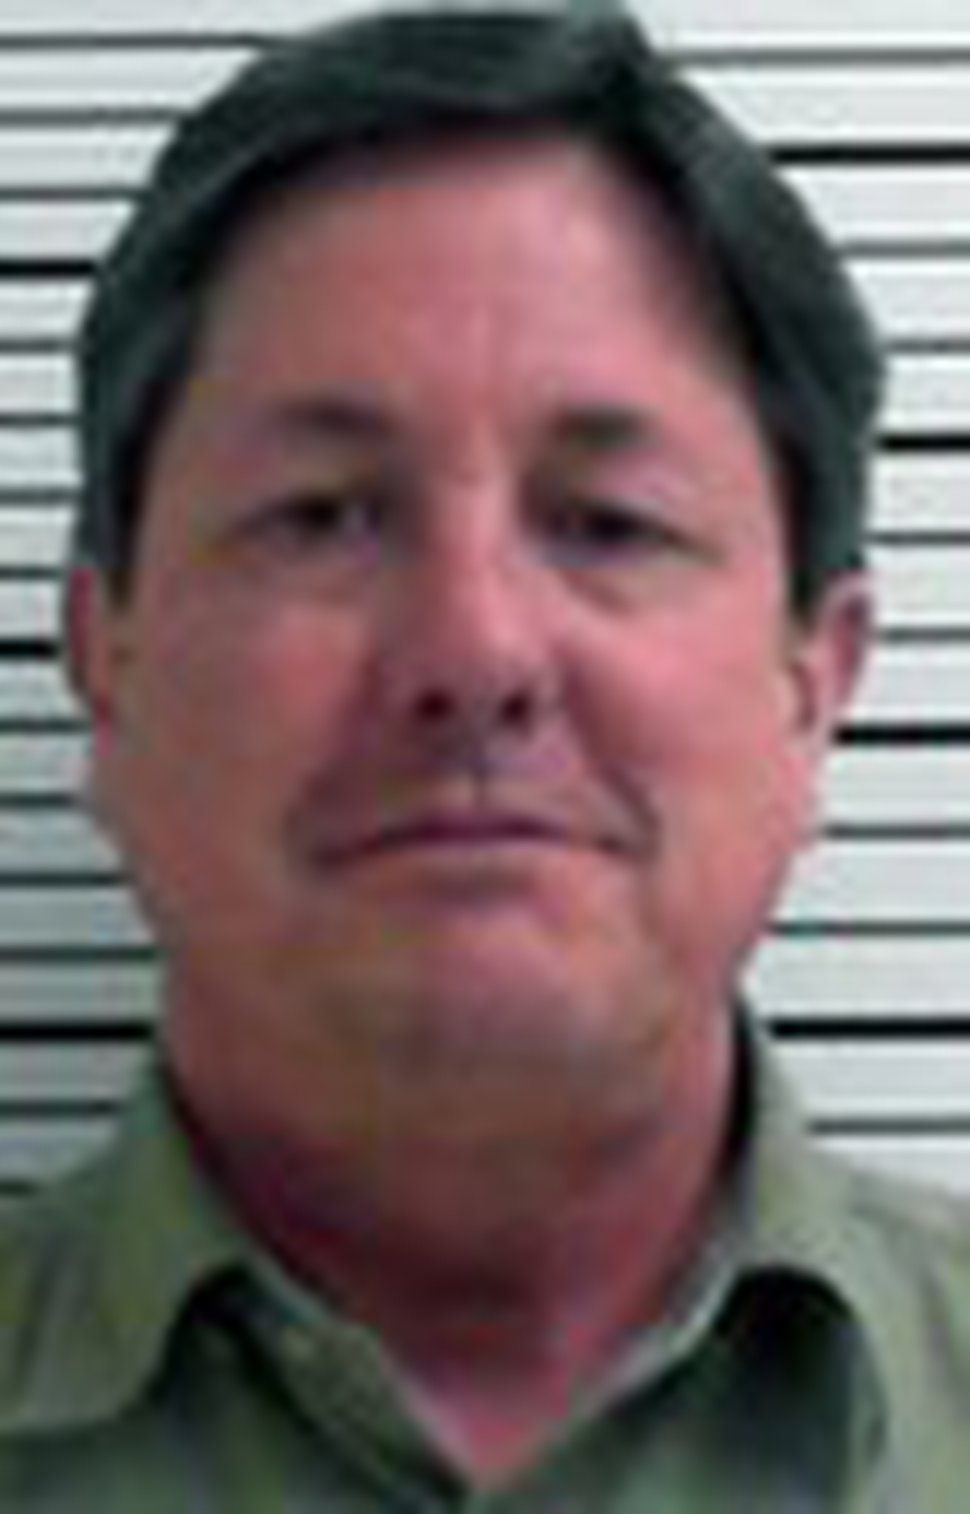 Courtesy | FBI Lyle Steed Jeffs is wanted for fleeing from home confinement in Salt Lake City, Utah, over the weekend of June 18 to June 19, 2016.